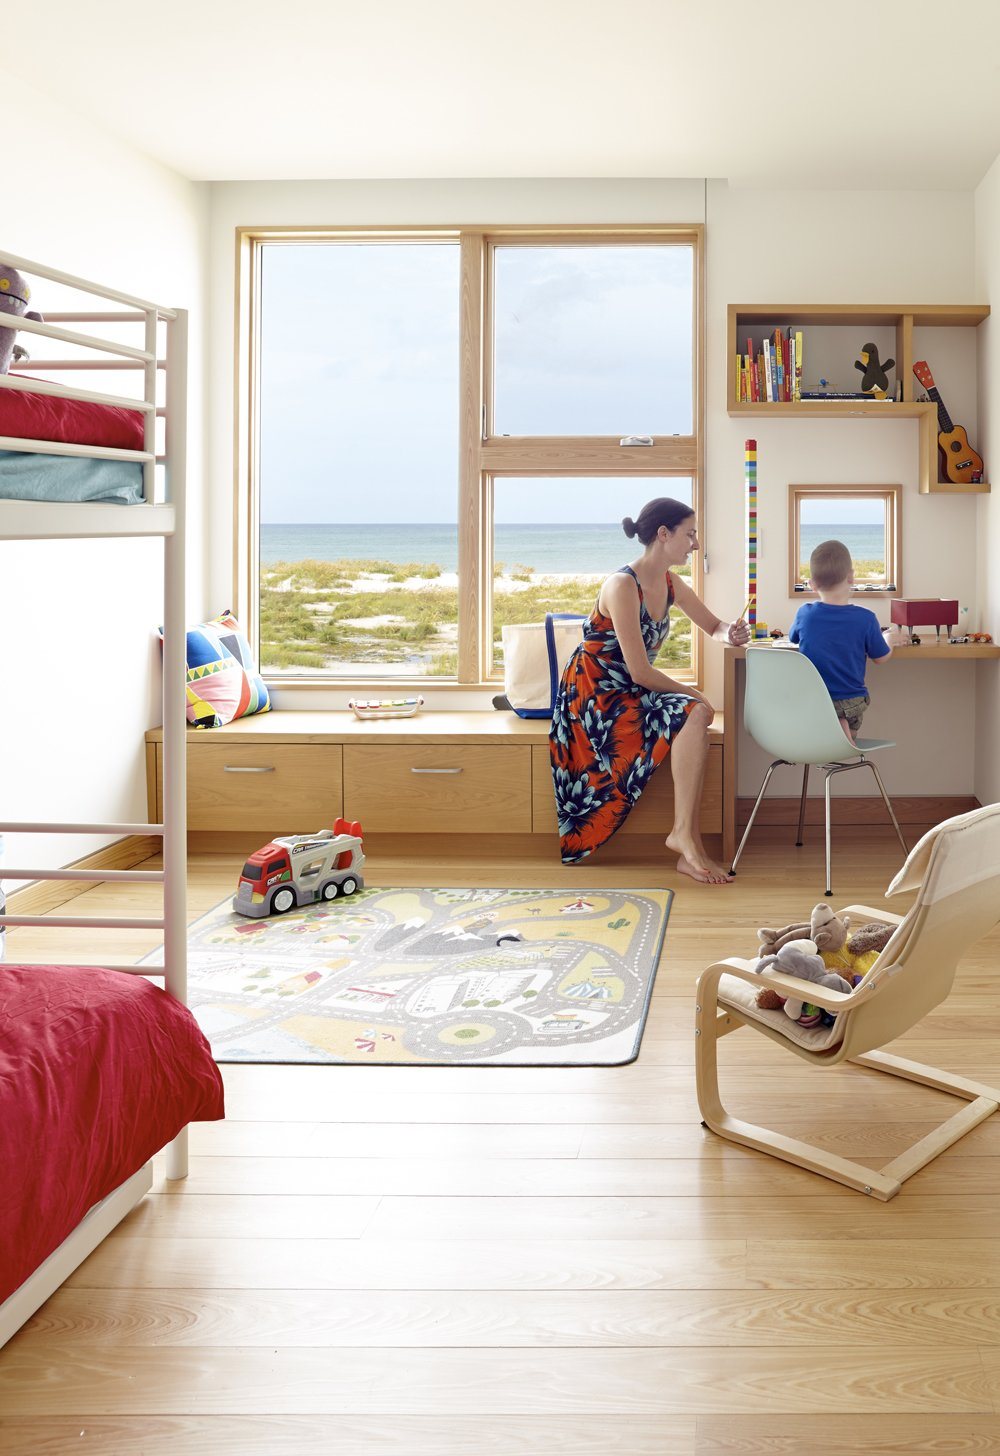 The kids' bedroom sports an Ikea bunk bed and trundle, which leaves plenty of space for toys. Custom cypress built-ins provide multi-functional storage and seating areas and minimize the need for furniture. Angular Modern Beach House in Florida - Photo 7 of 10